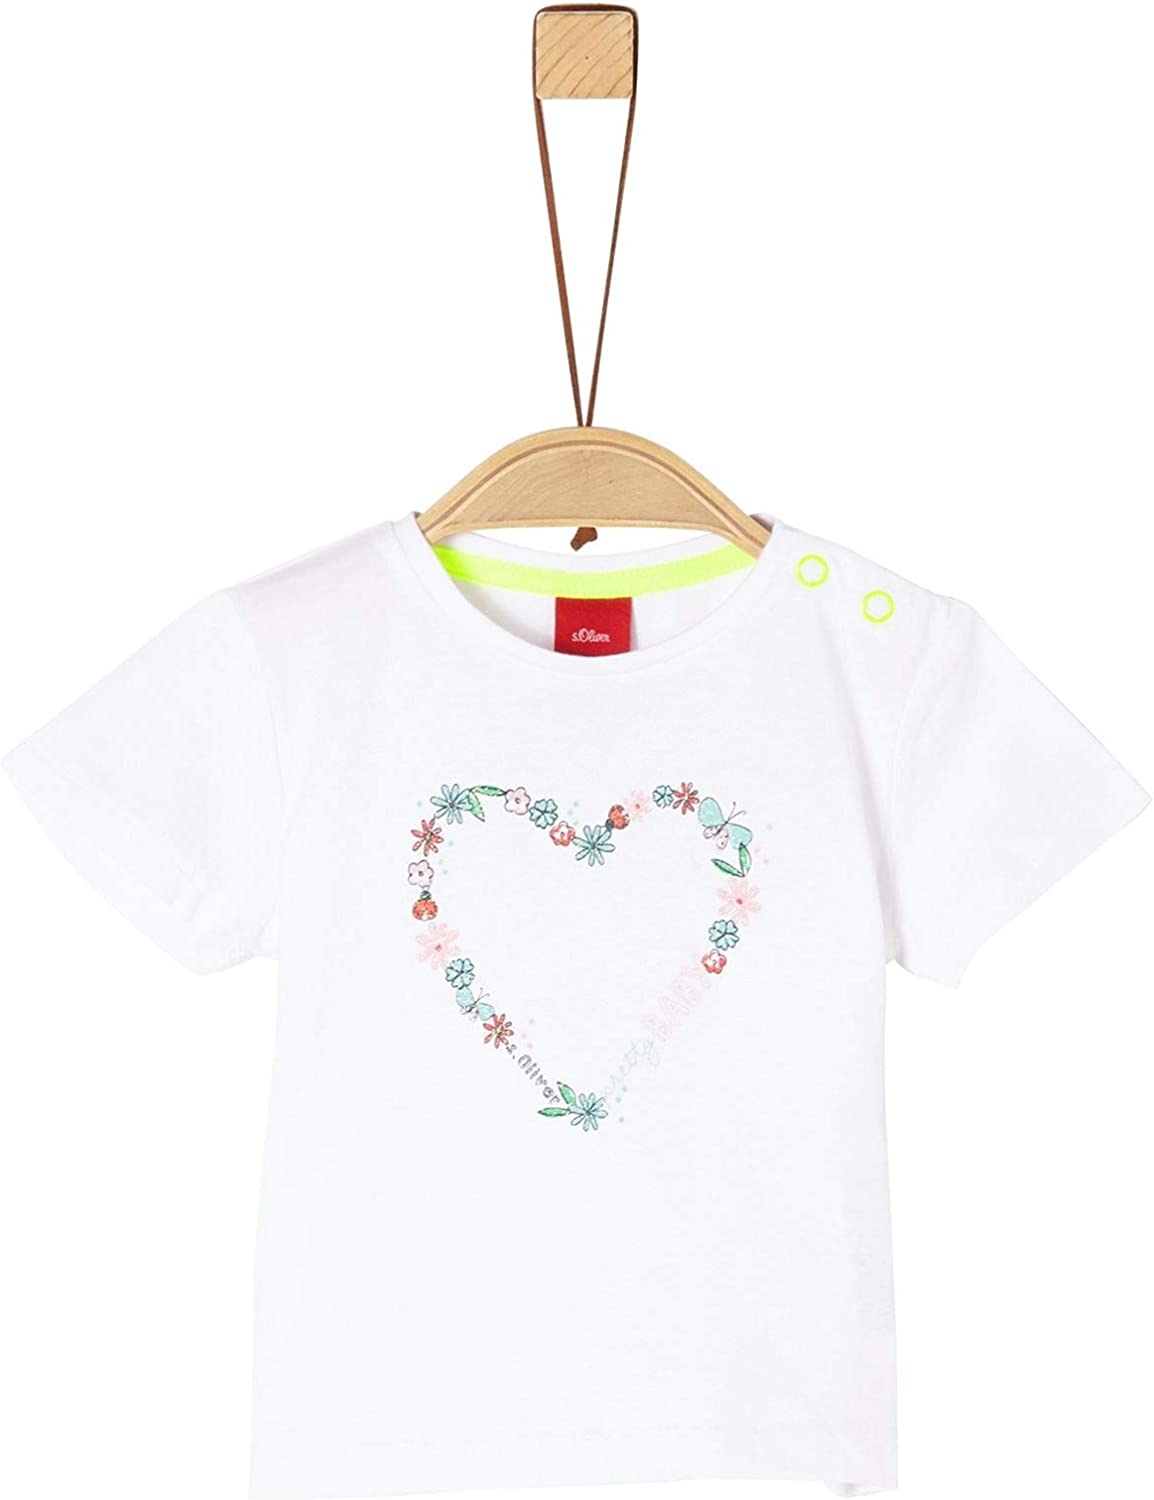 s.Oliver T-Shirt Baby Girls Bimba